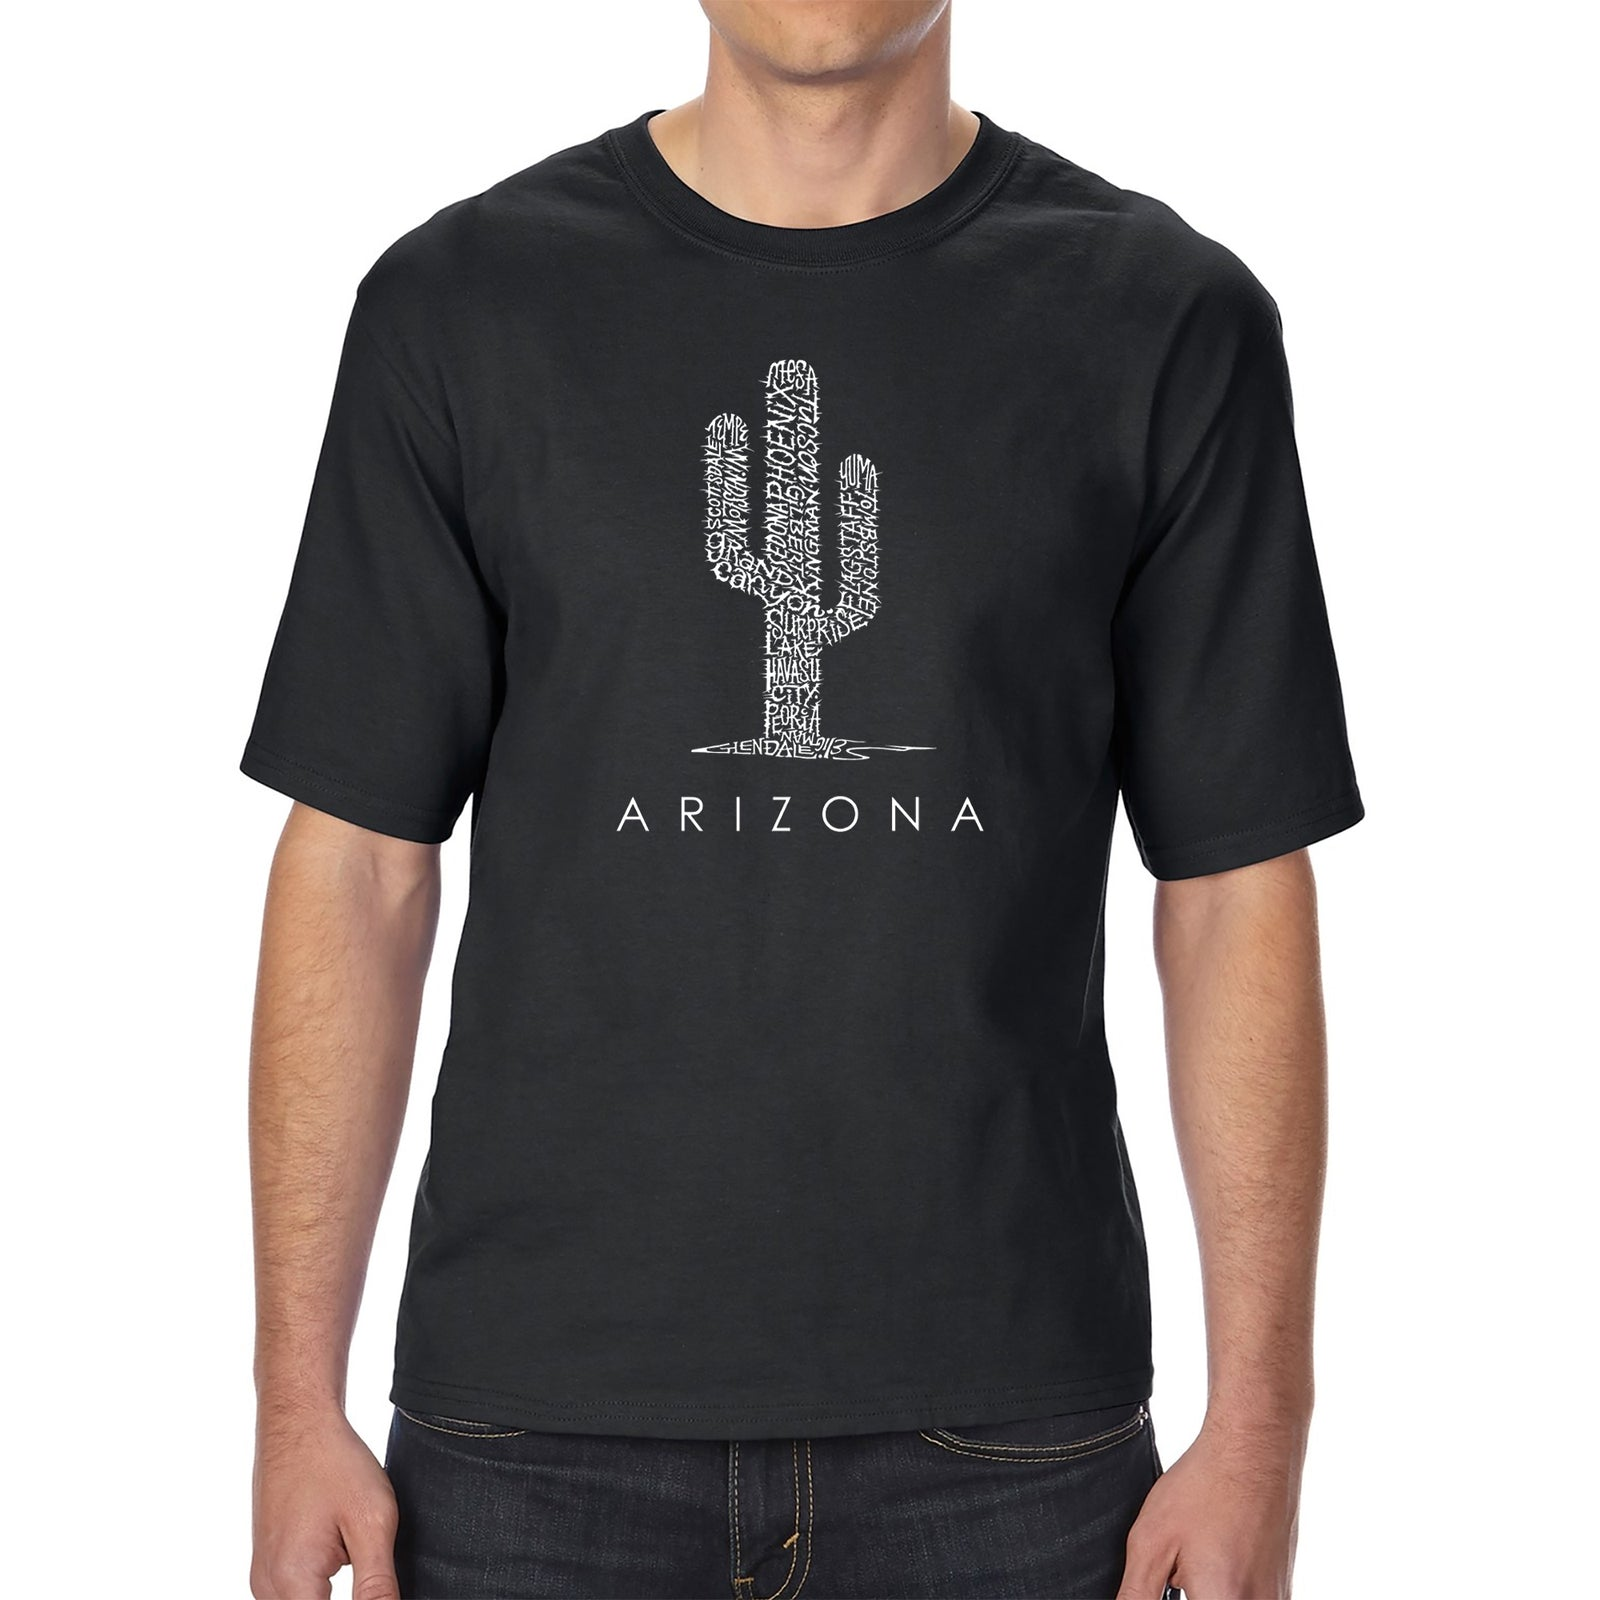 Men's Tall and Long Word Art T-shirt - Arizona Cities